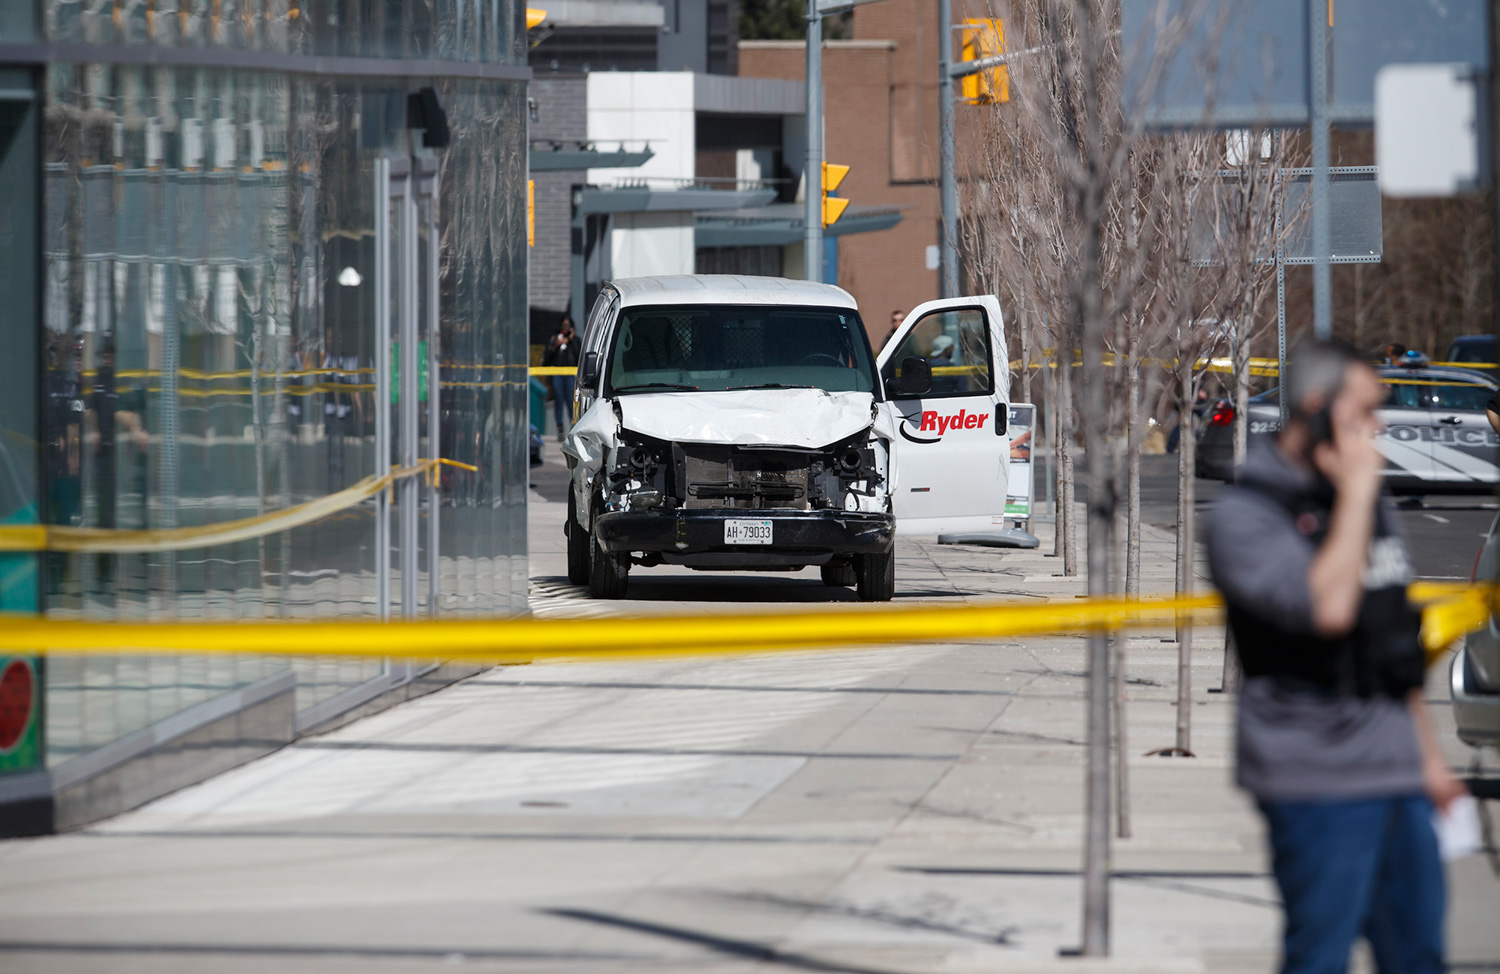 <div class='meta'><div class='origin-logo' data-origin='none'></div><span class='caption-text' data-credit='Cole Burston/Getty Images'>Police inspect a van suspected of being involved in a collision injuring at least eight people at Yonge St. and Finch Ave. on April 23, 2018 in Toronto, Canada</span></div>